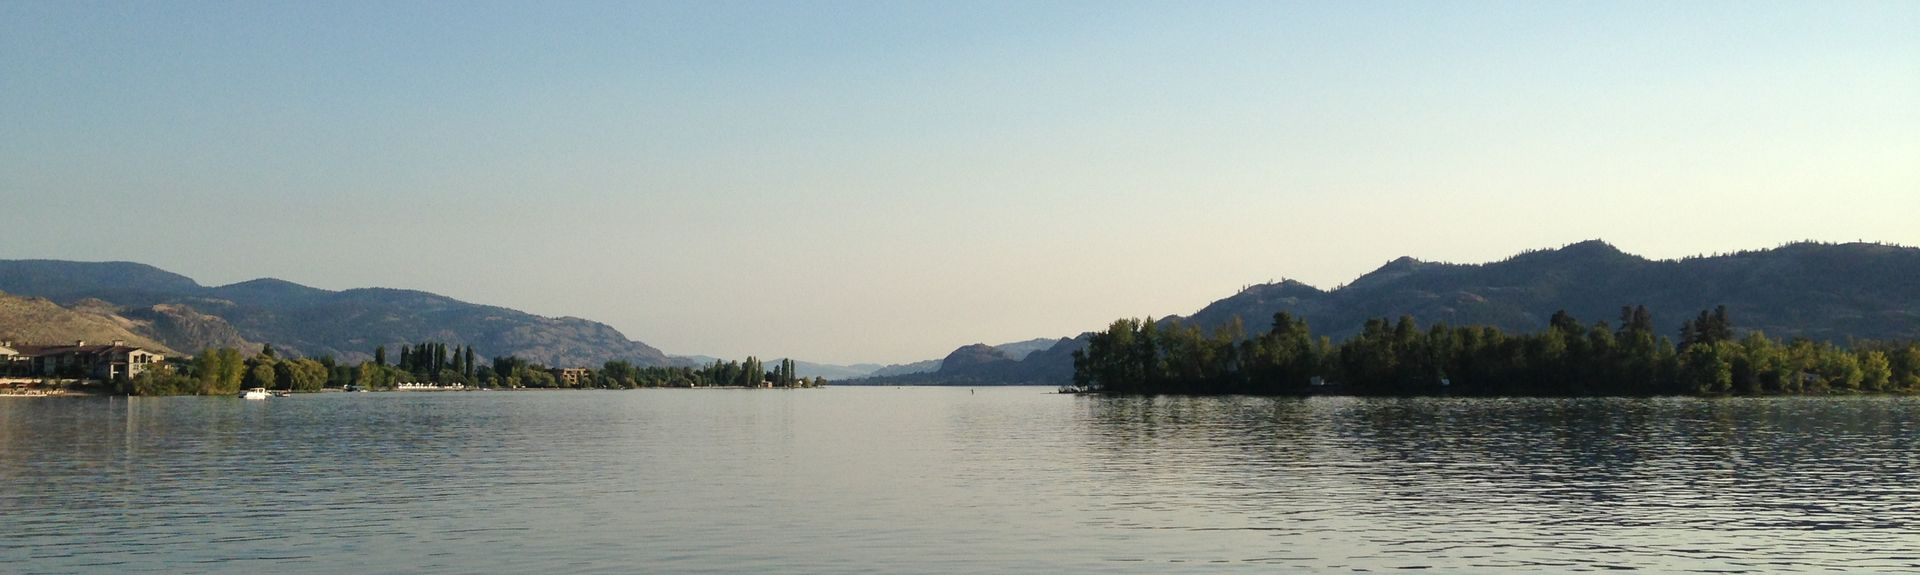 Village On The Lake (Osoyoos, British Columbia, Canadá)